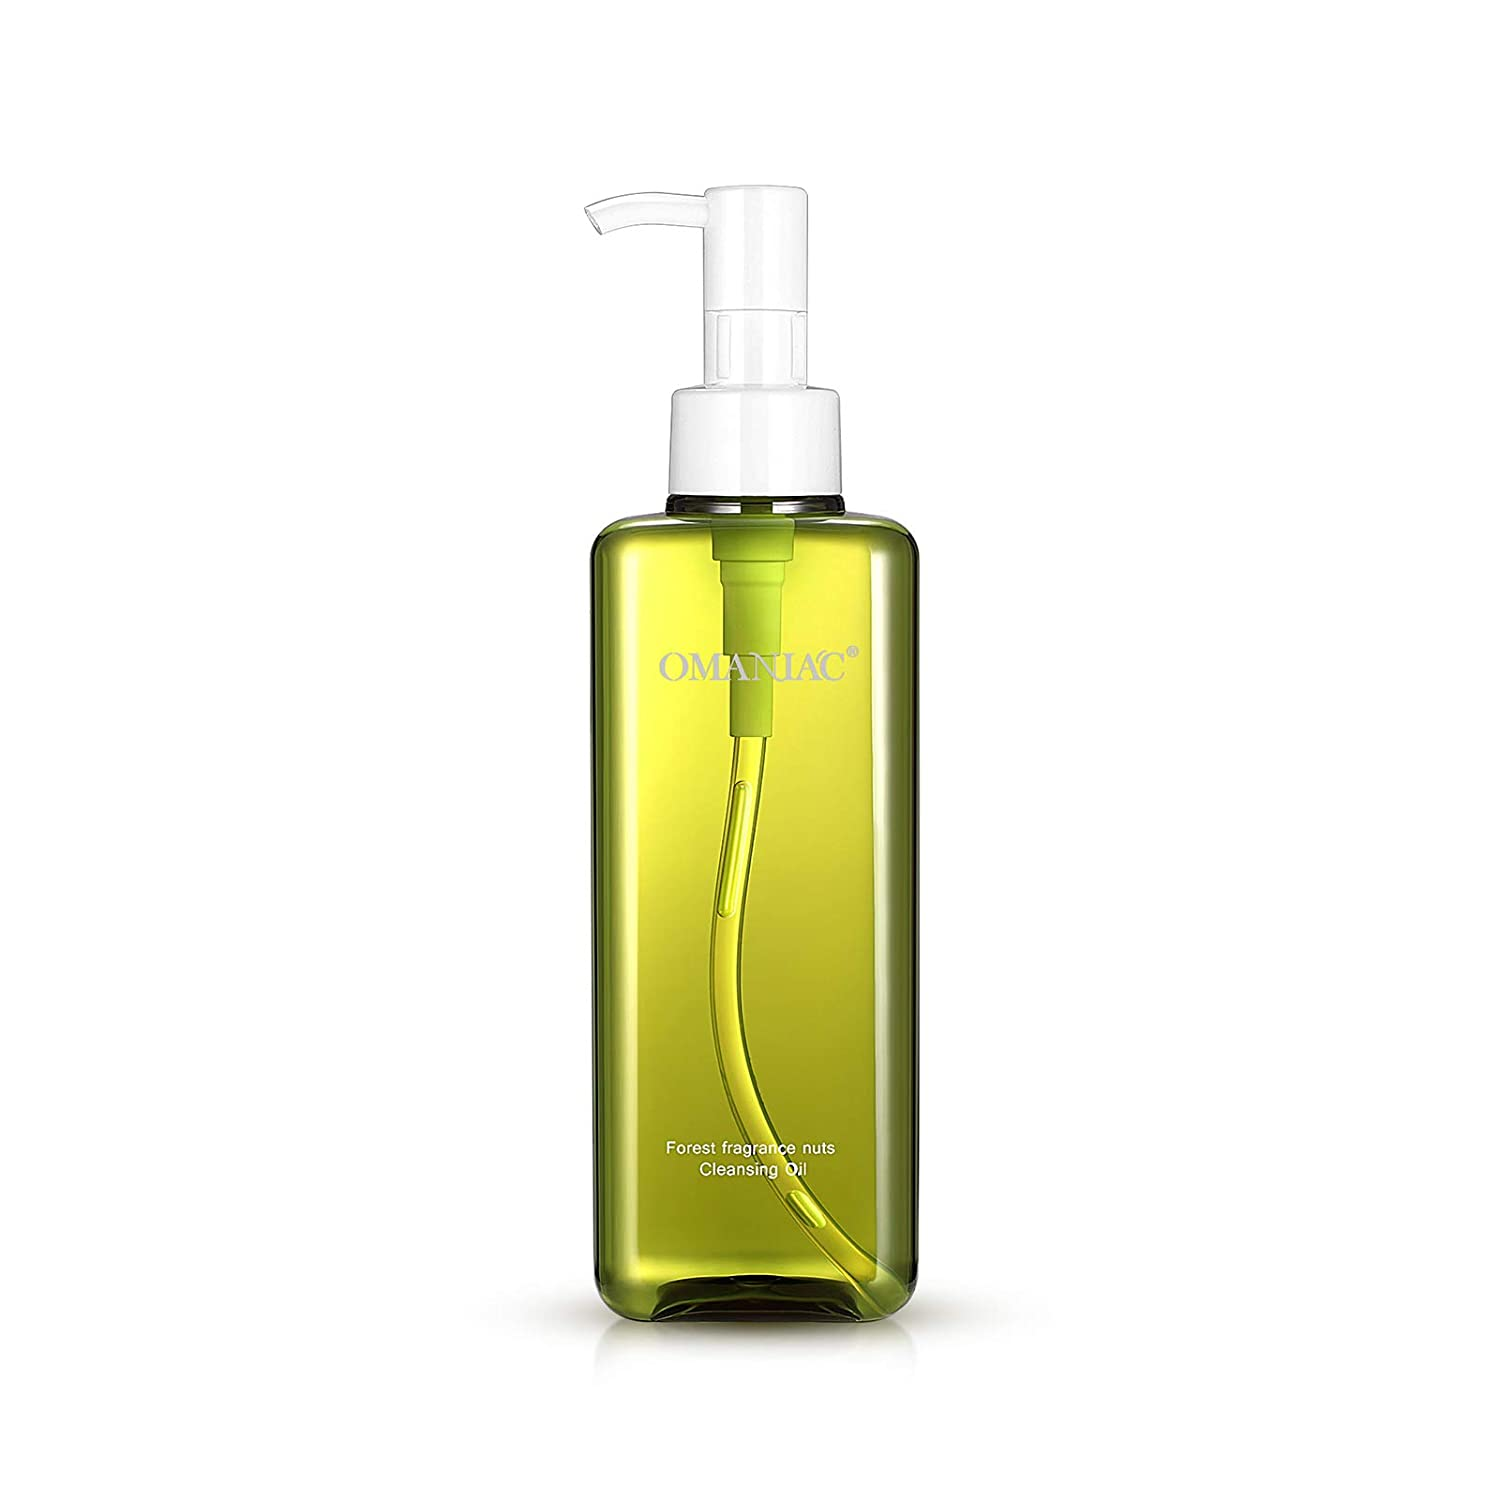 Large discharge sale OMANIAC Forest Nuts Deep Cleansing Discount is also underway Oil 6.76 Natural fl.oz